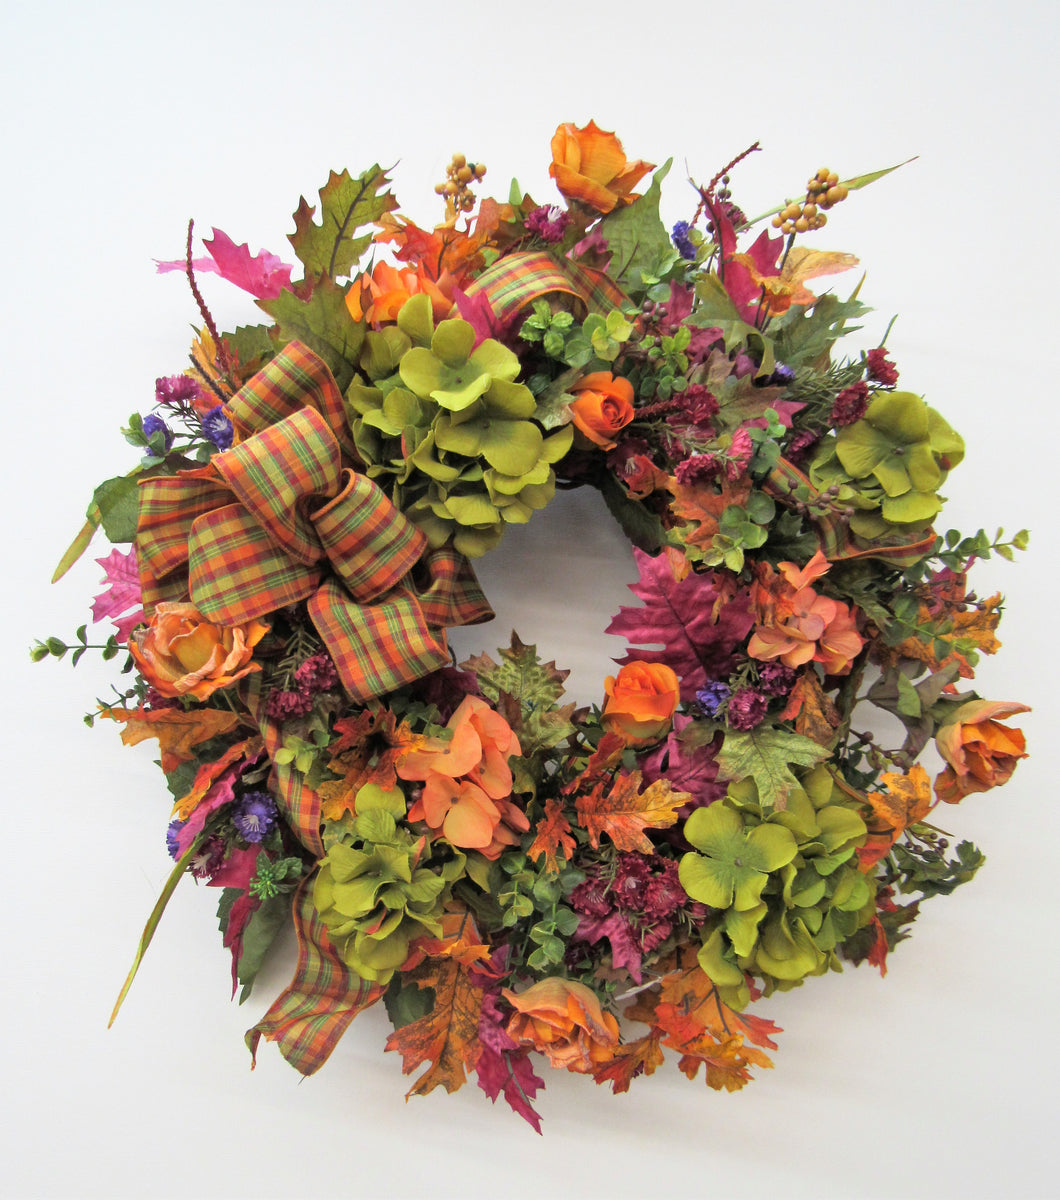 Gallery/Harv71 - April's Garden Wreath